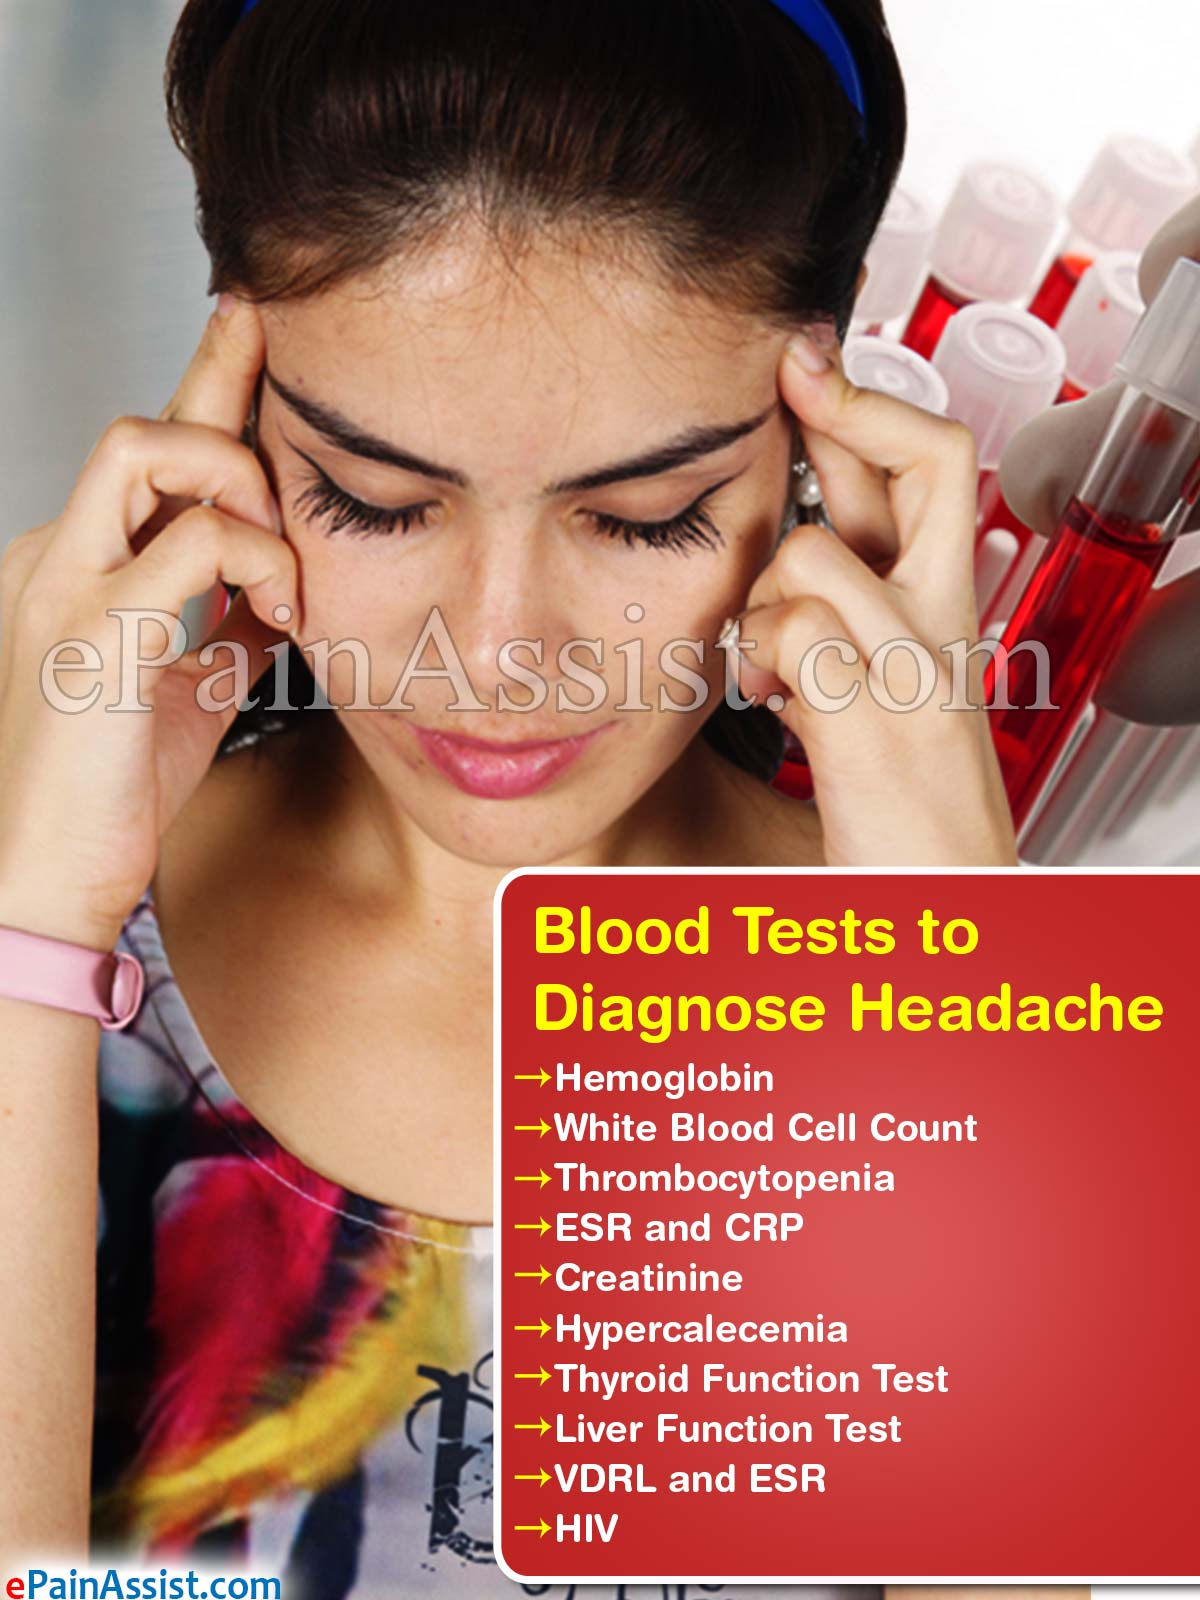 Blood Tests to Diagnose Headache